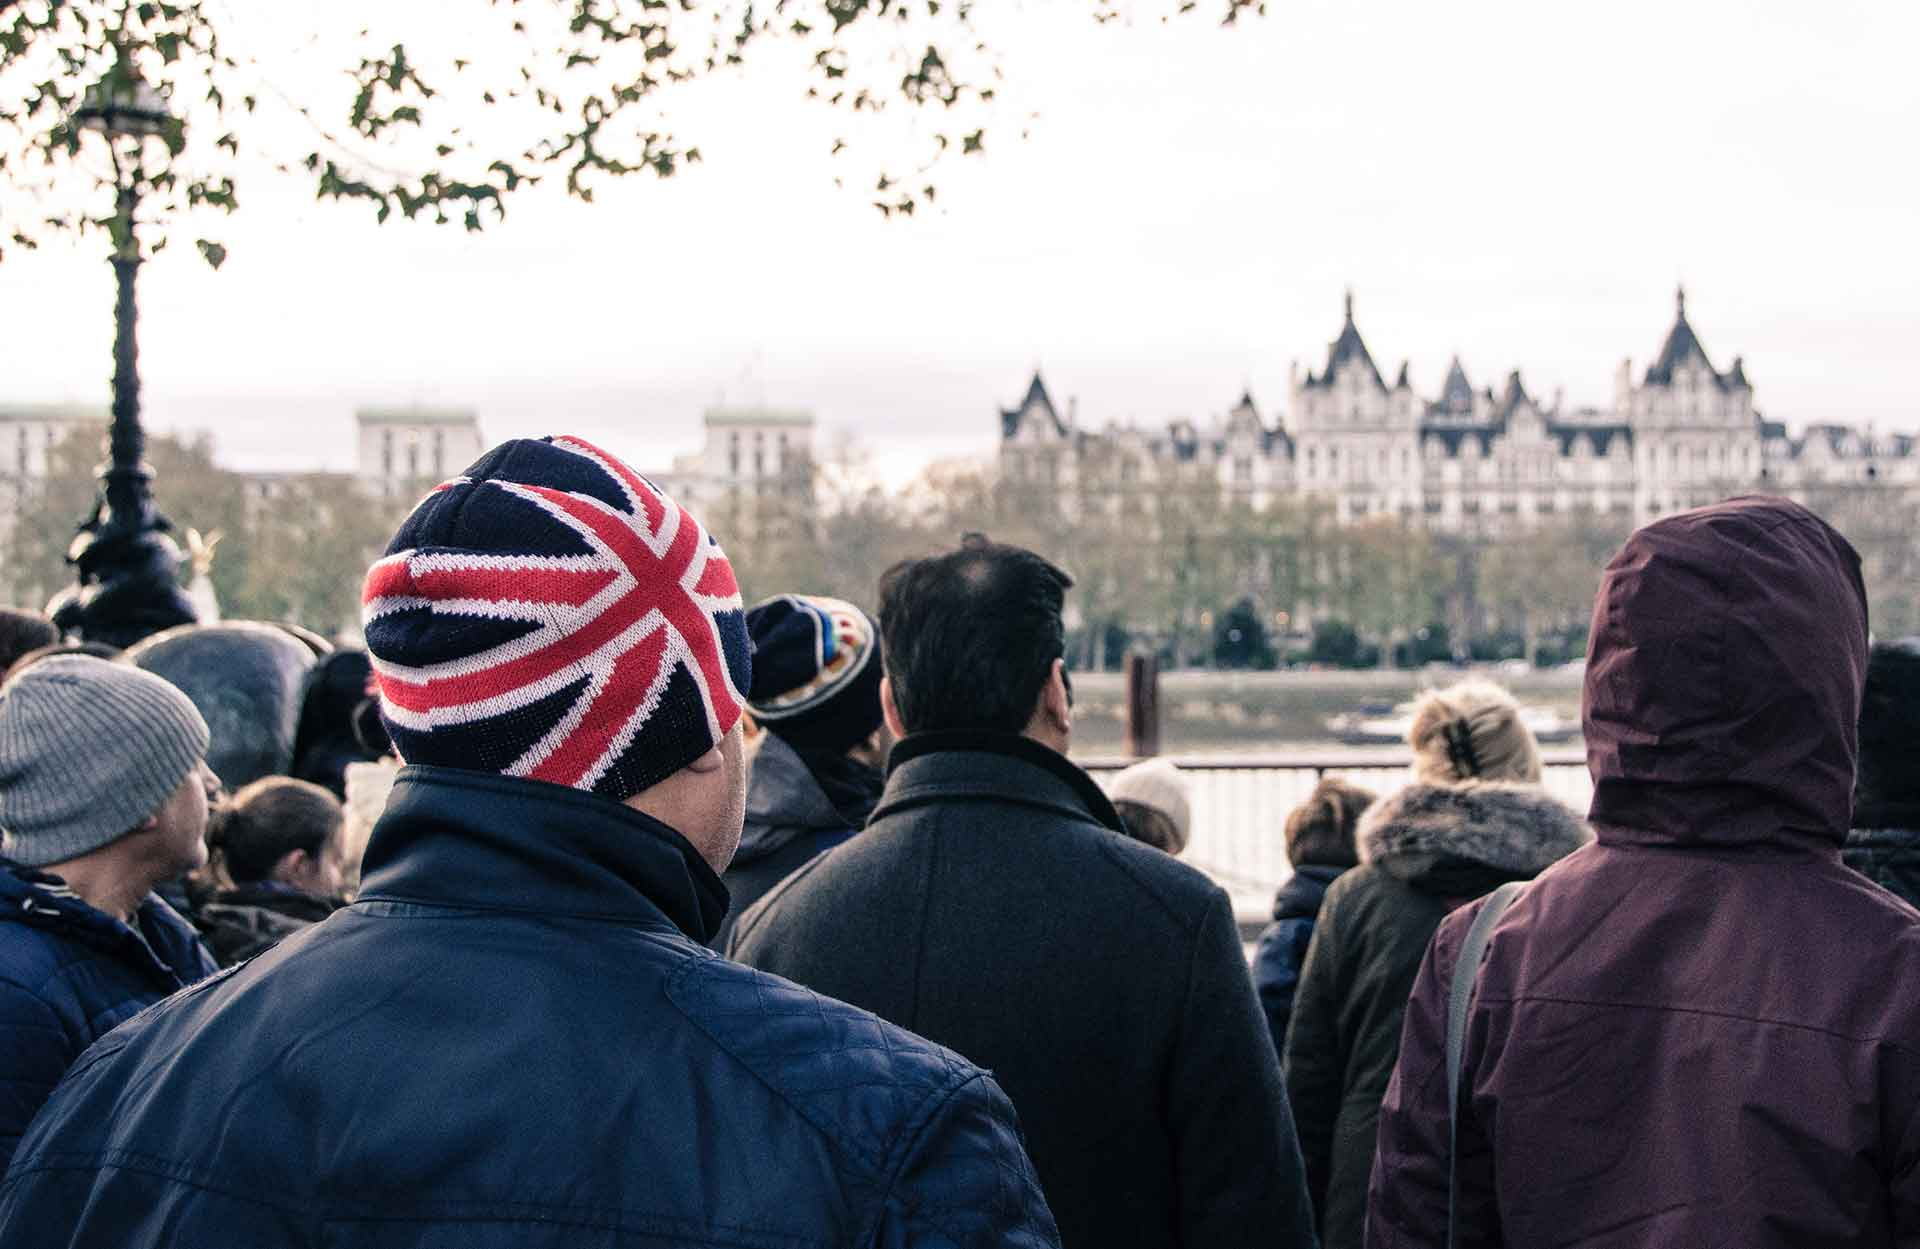 Man in a Union Jack hat